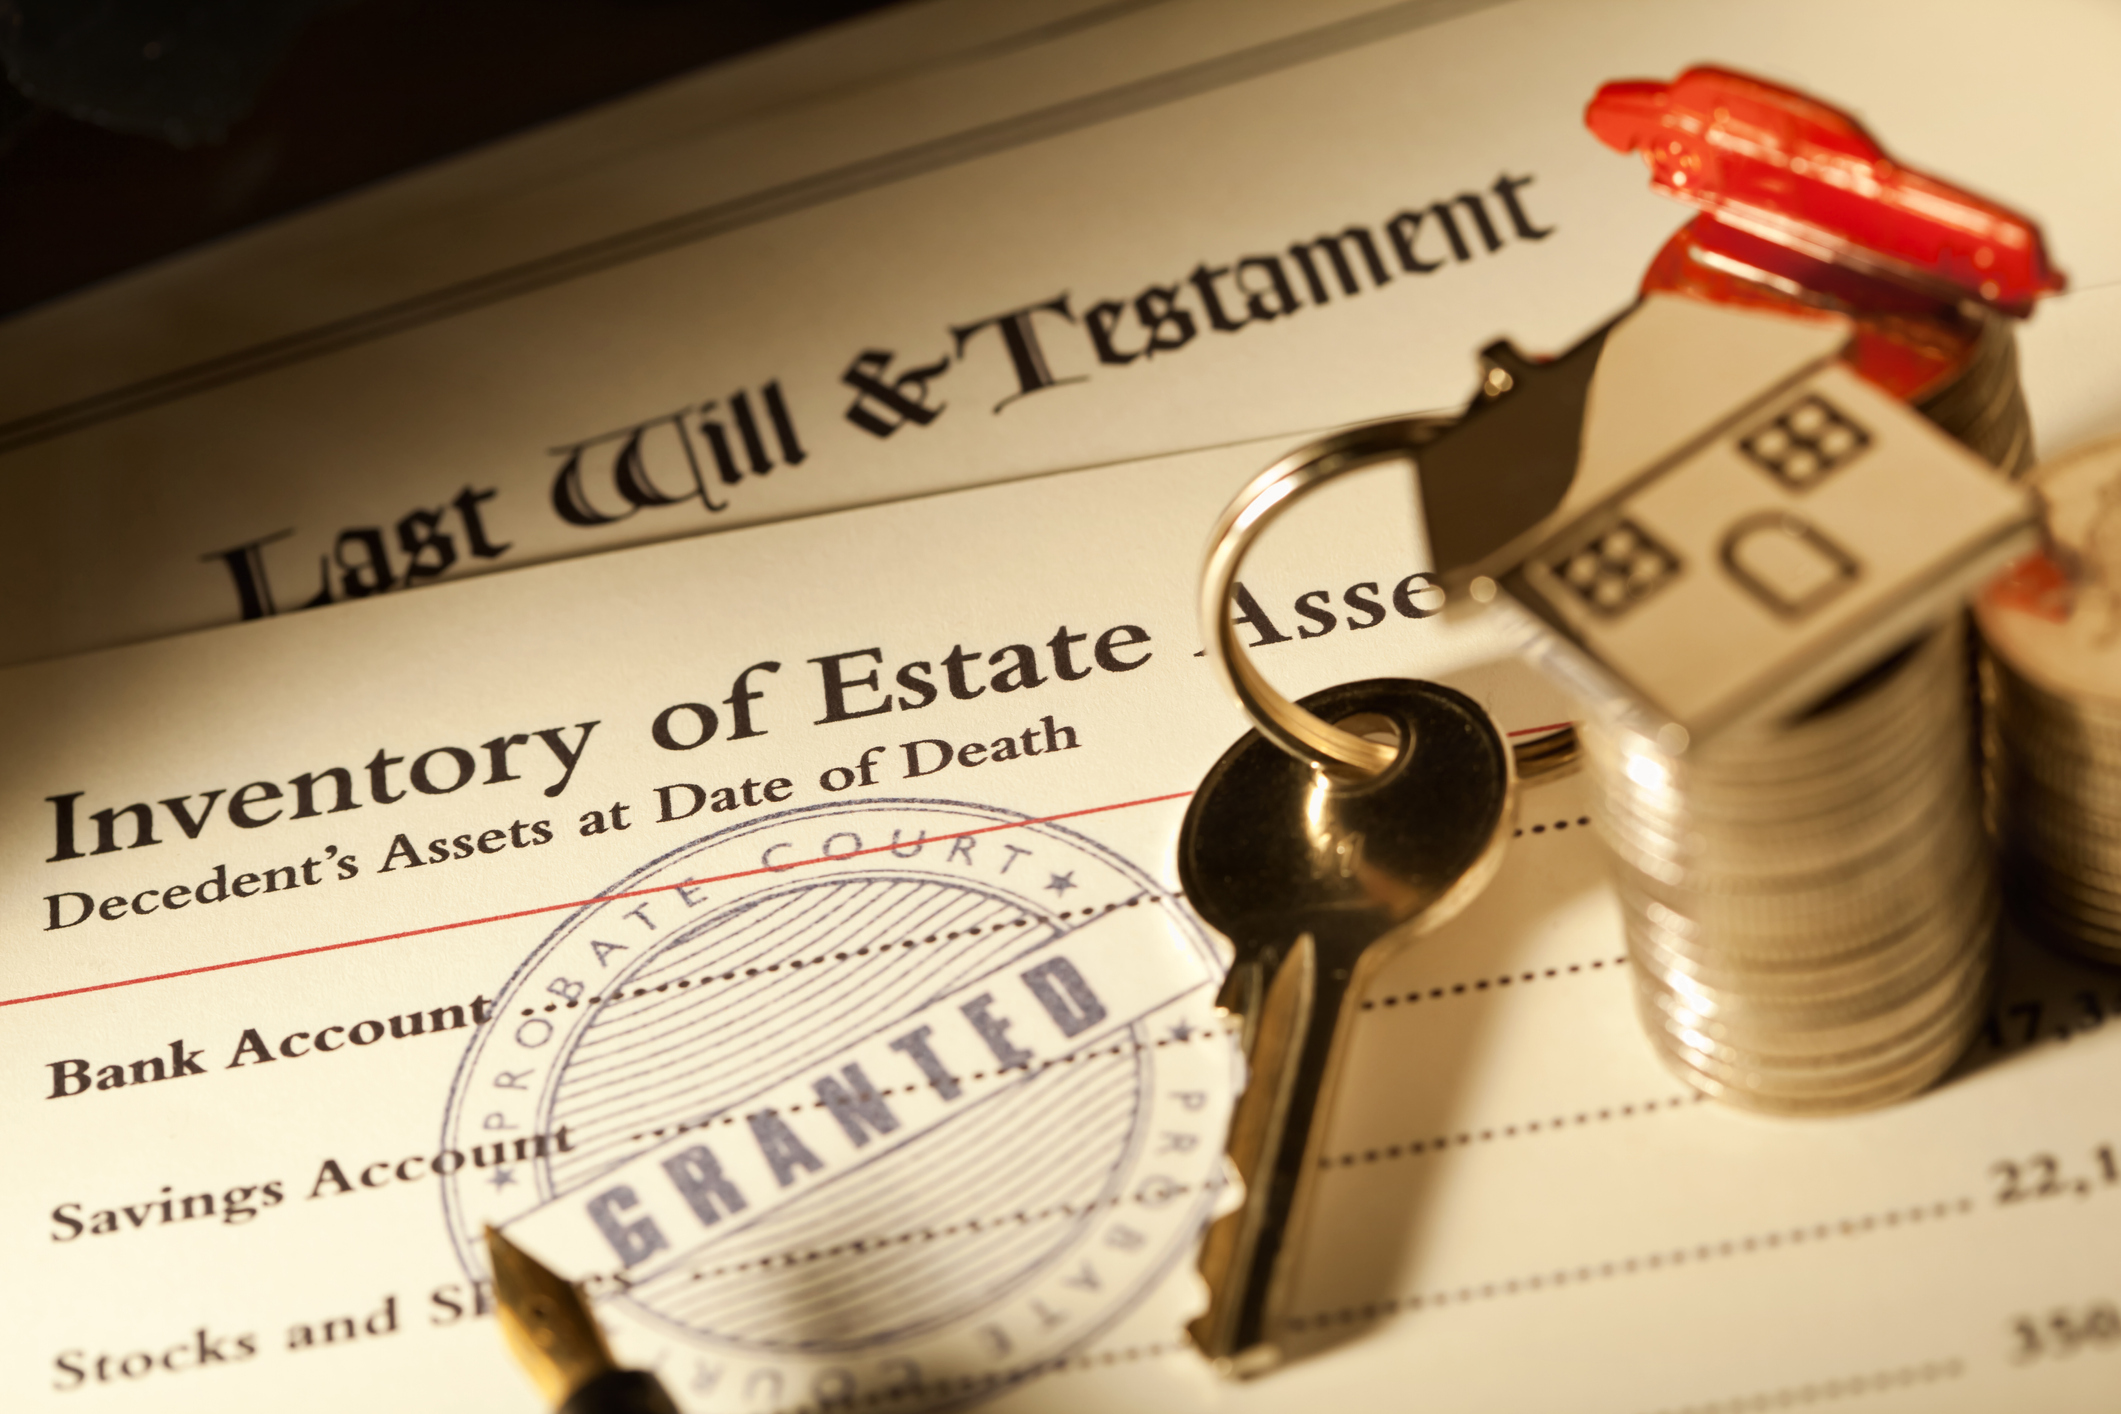 """Probate granted on a Last Will & Testament at a Probate Court. The first step in the legal process of administering and transferring ownership of the estate of a deceased personaas wealth, including savings, antiques, property and cars, as designated in the deceasedaas will.  A Probate Court decides the legal validity of the testatoraas will and grants approval thereof to the executors to legally distribute the estate according to the will."""